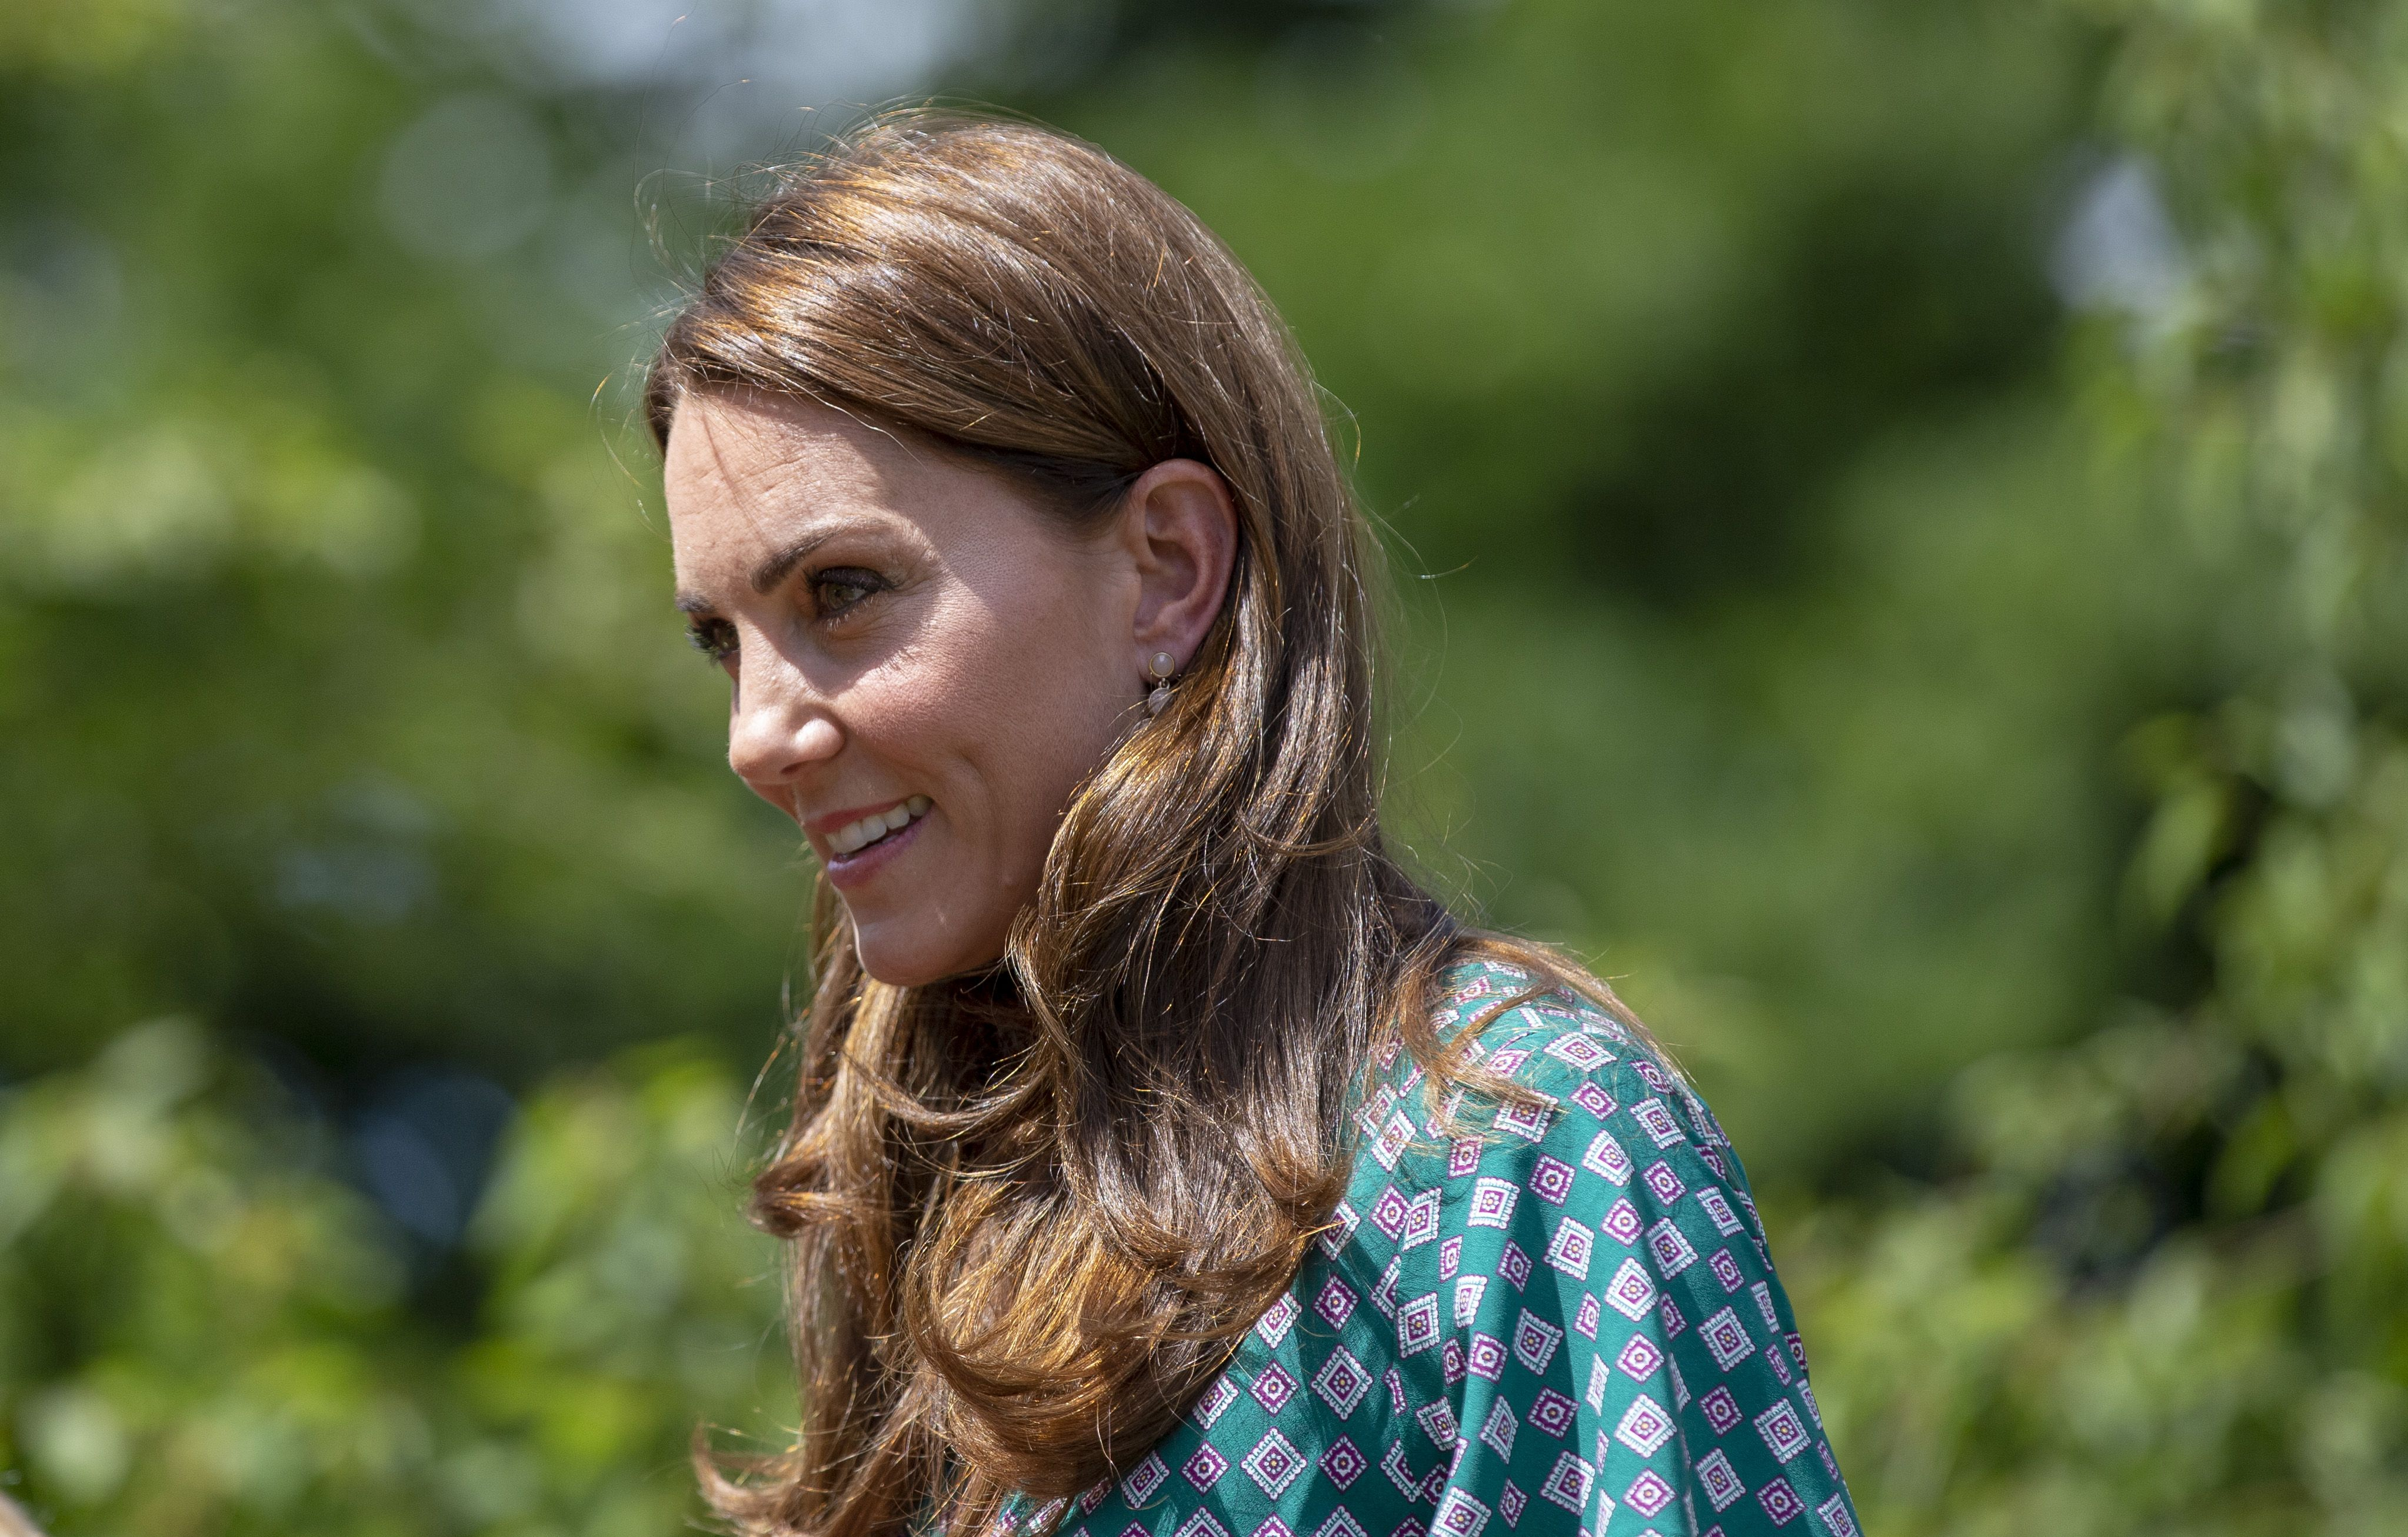 Kate Middleton's nature garden helped RHS gain a record 12,000 new members in May